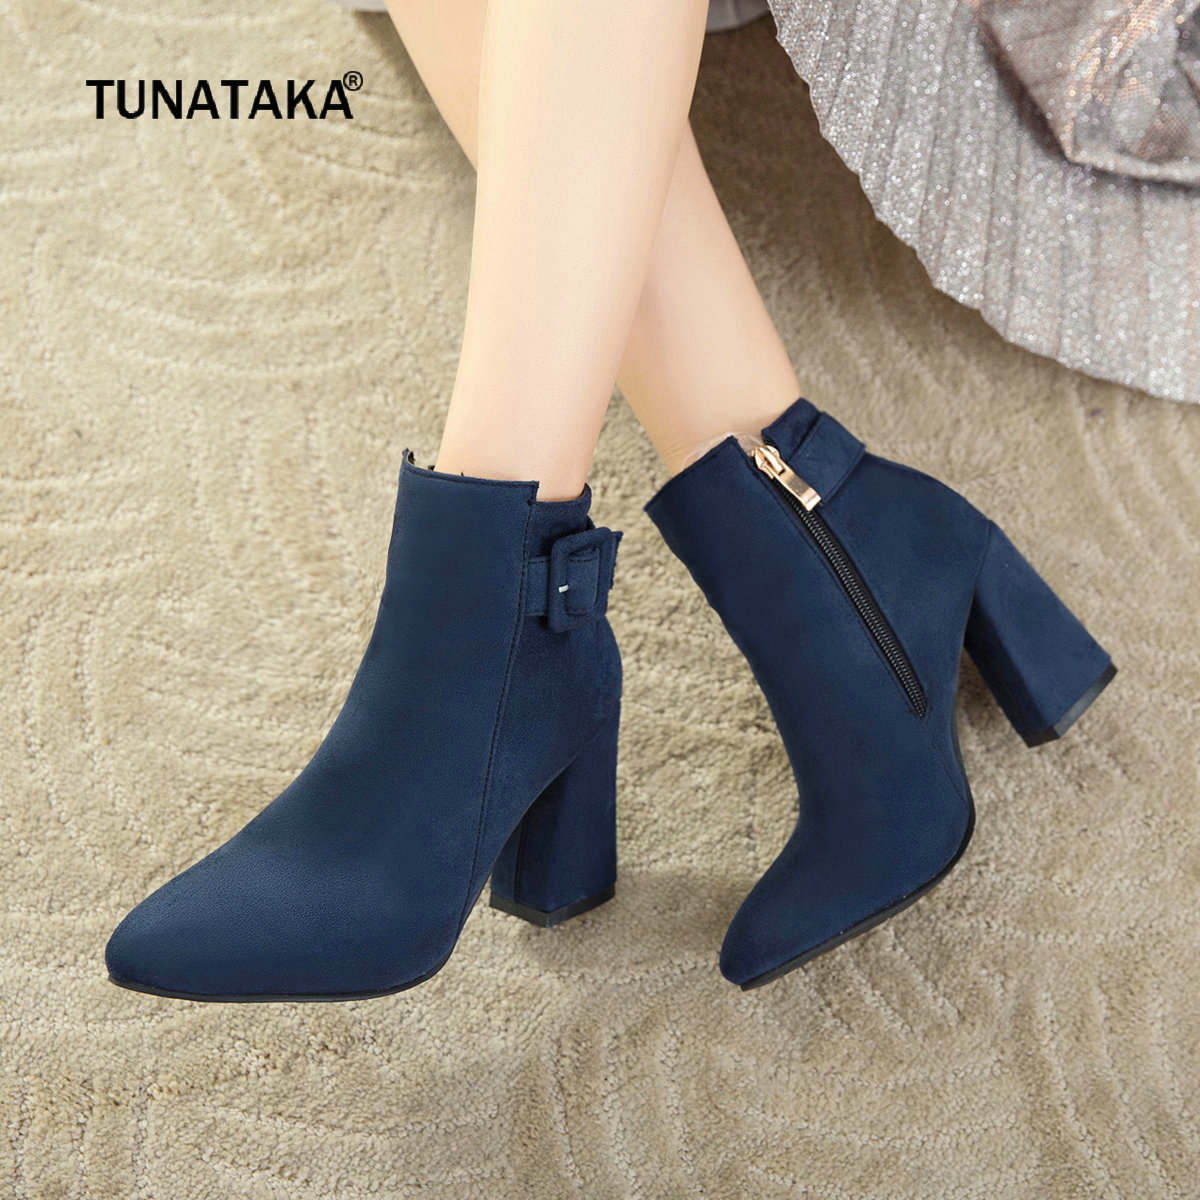 Women Zipper Boots Thick High Heel Ankle Boots Flock Pointed Toe Fashion Boots Winter Plus Size Ladies Shoes Black Blue Yellow autumn winter women thick high heel genuine leather buckle side zipper pointed toe fashion ankle martin boots size 34 39 sxq0902